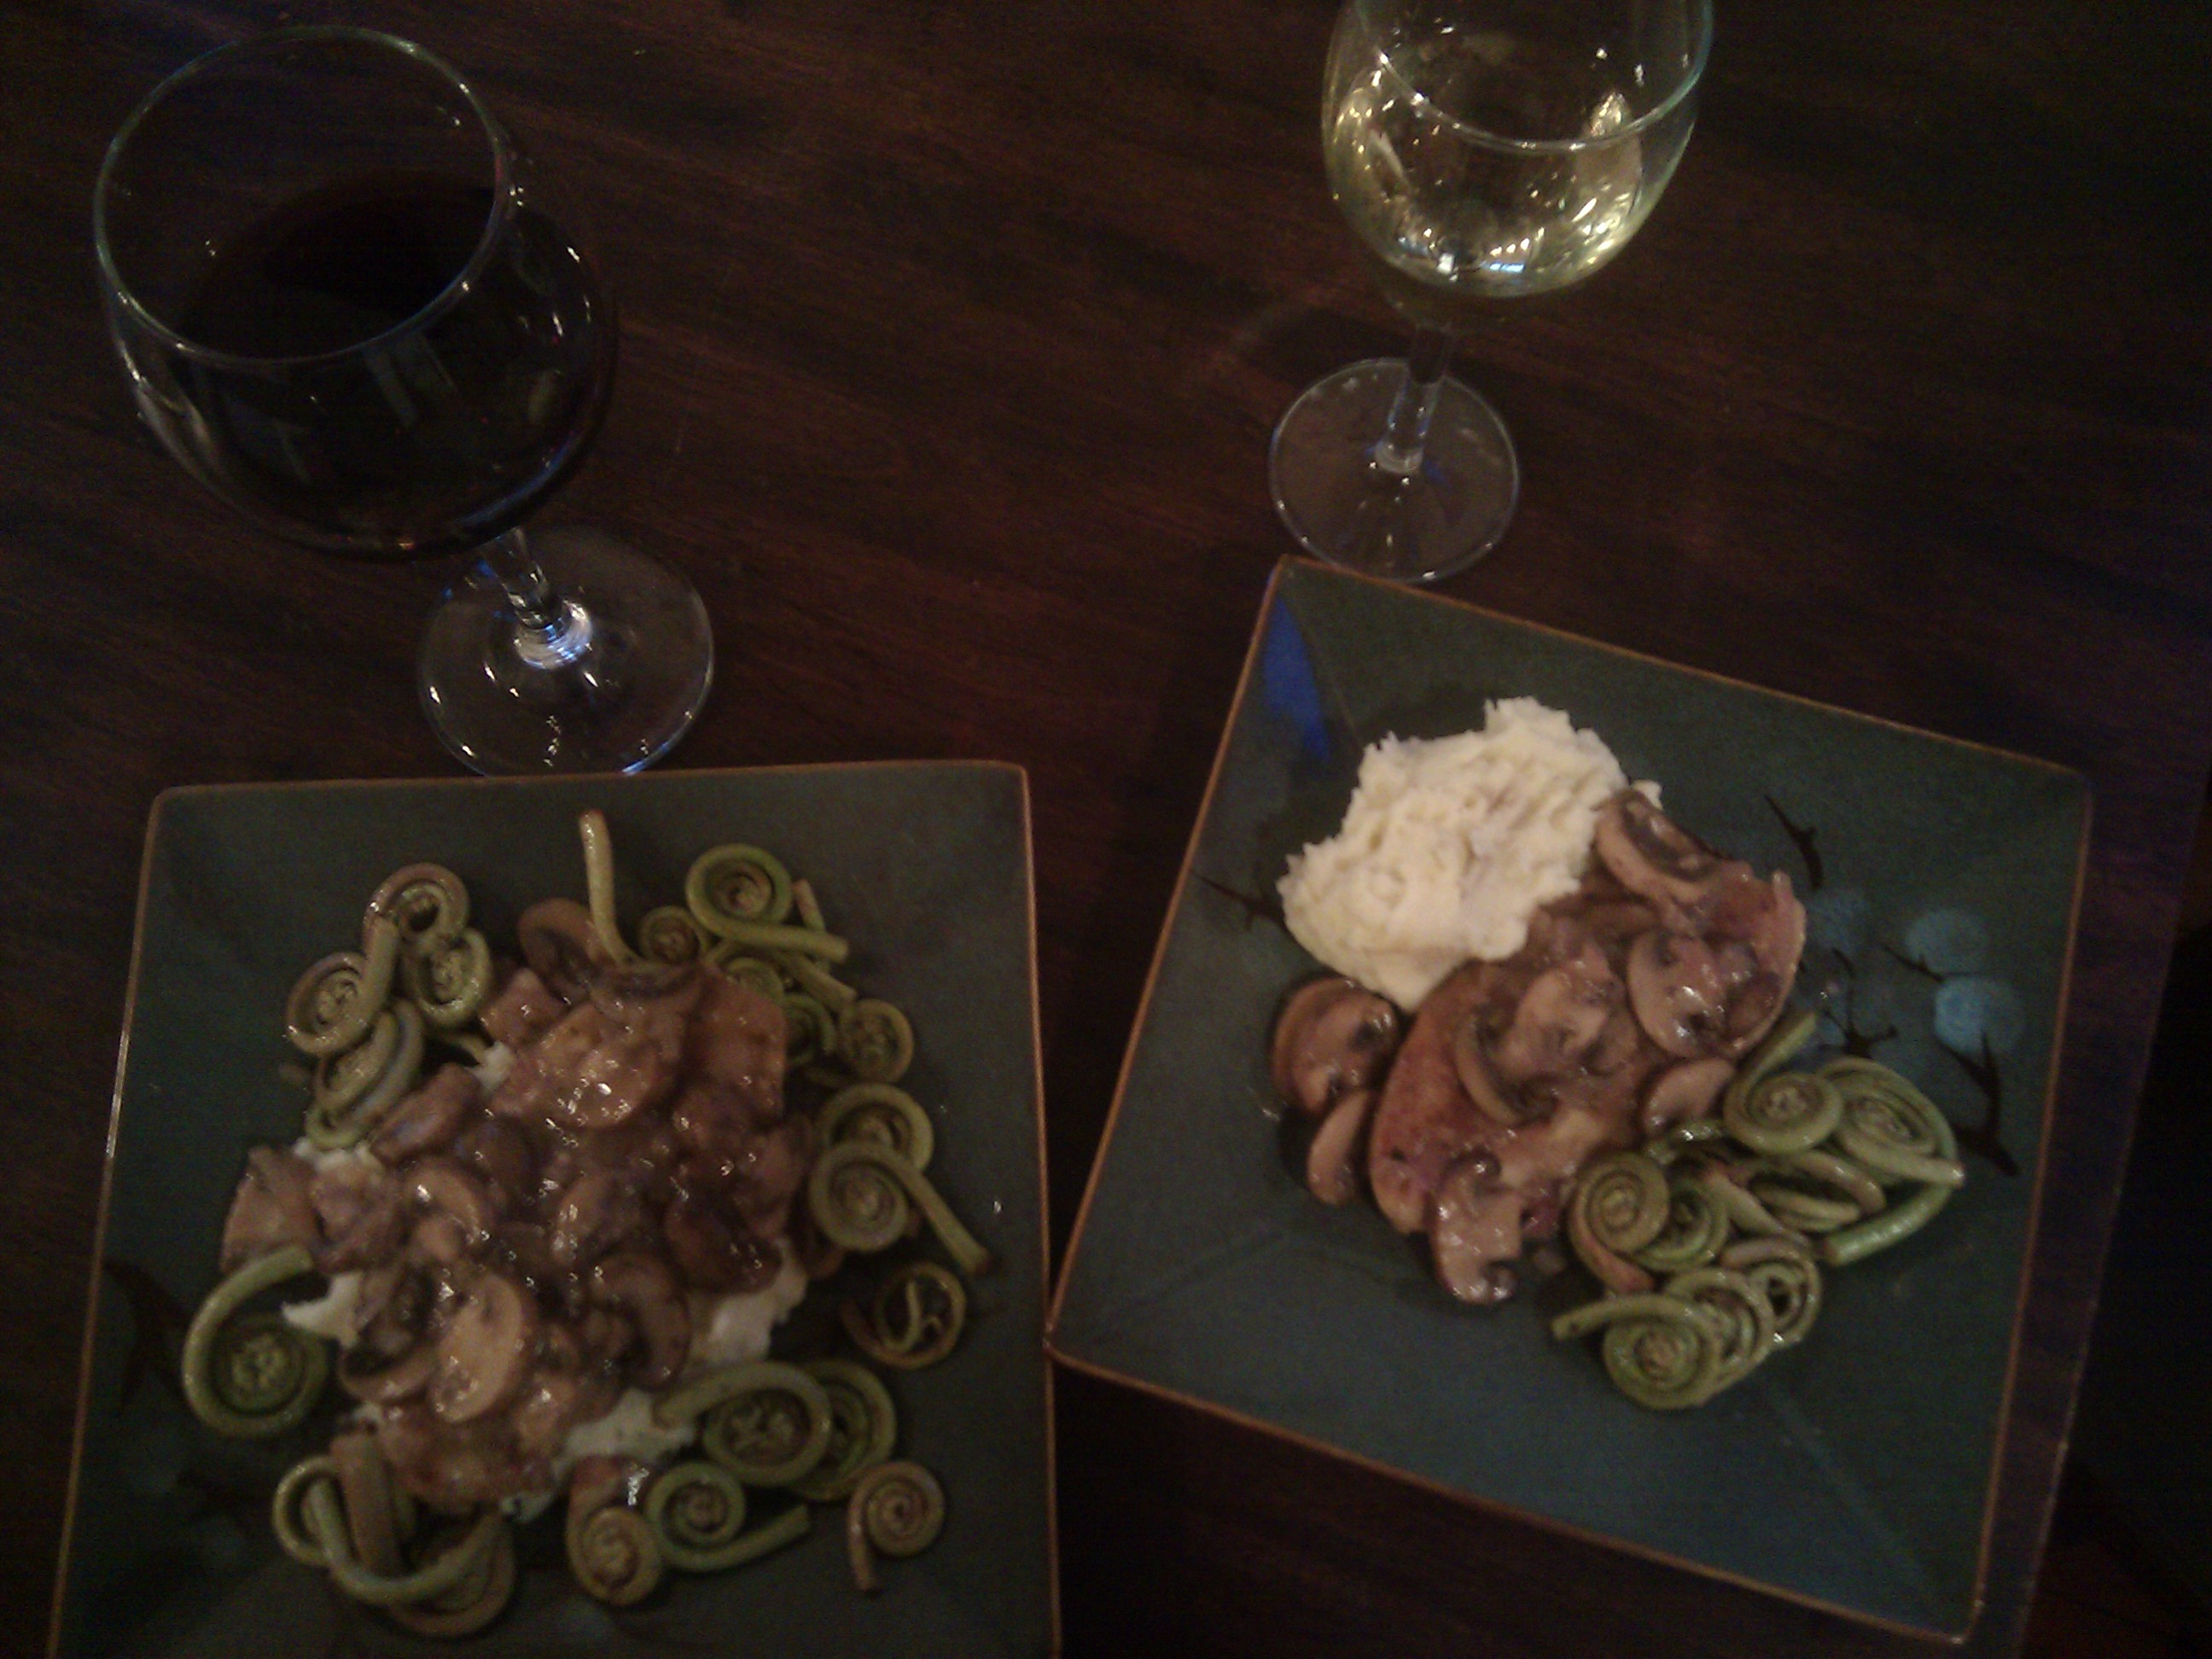 Chik'n Marsala, Garlic Mashed Potatoes and Fiddlehead Ferns